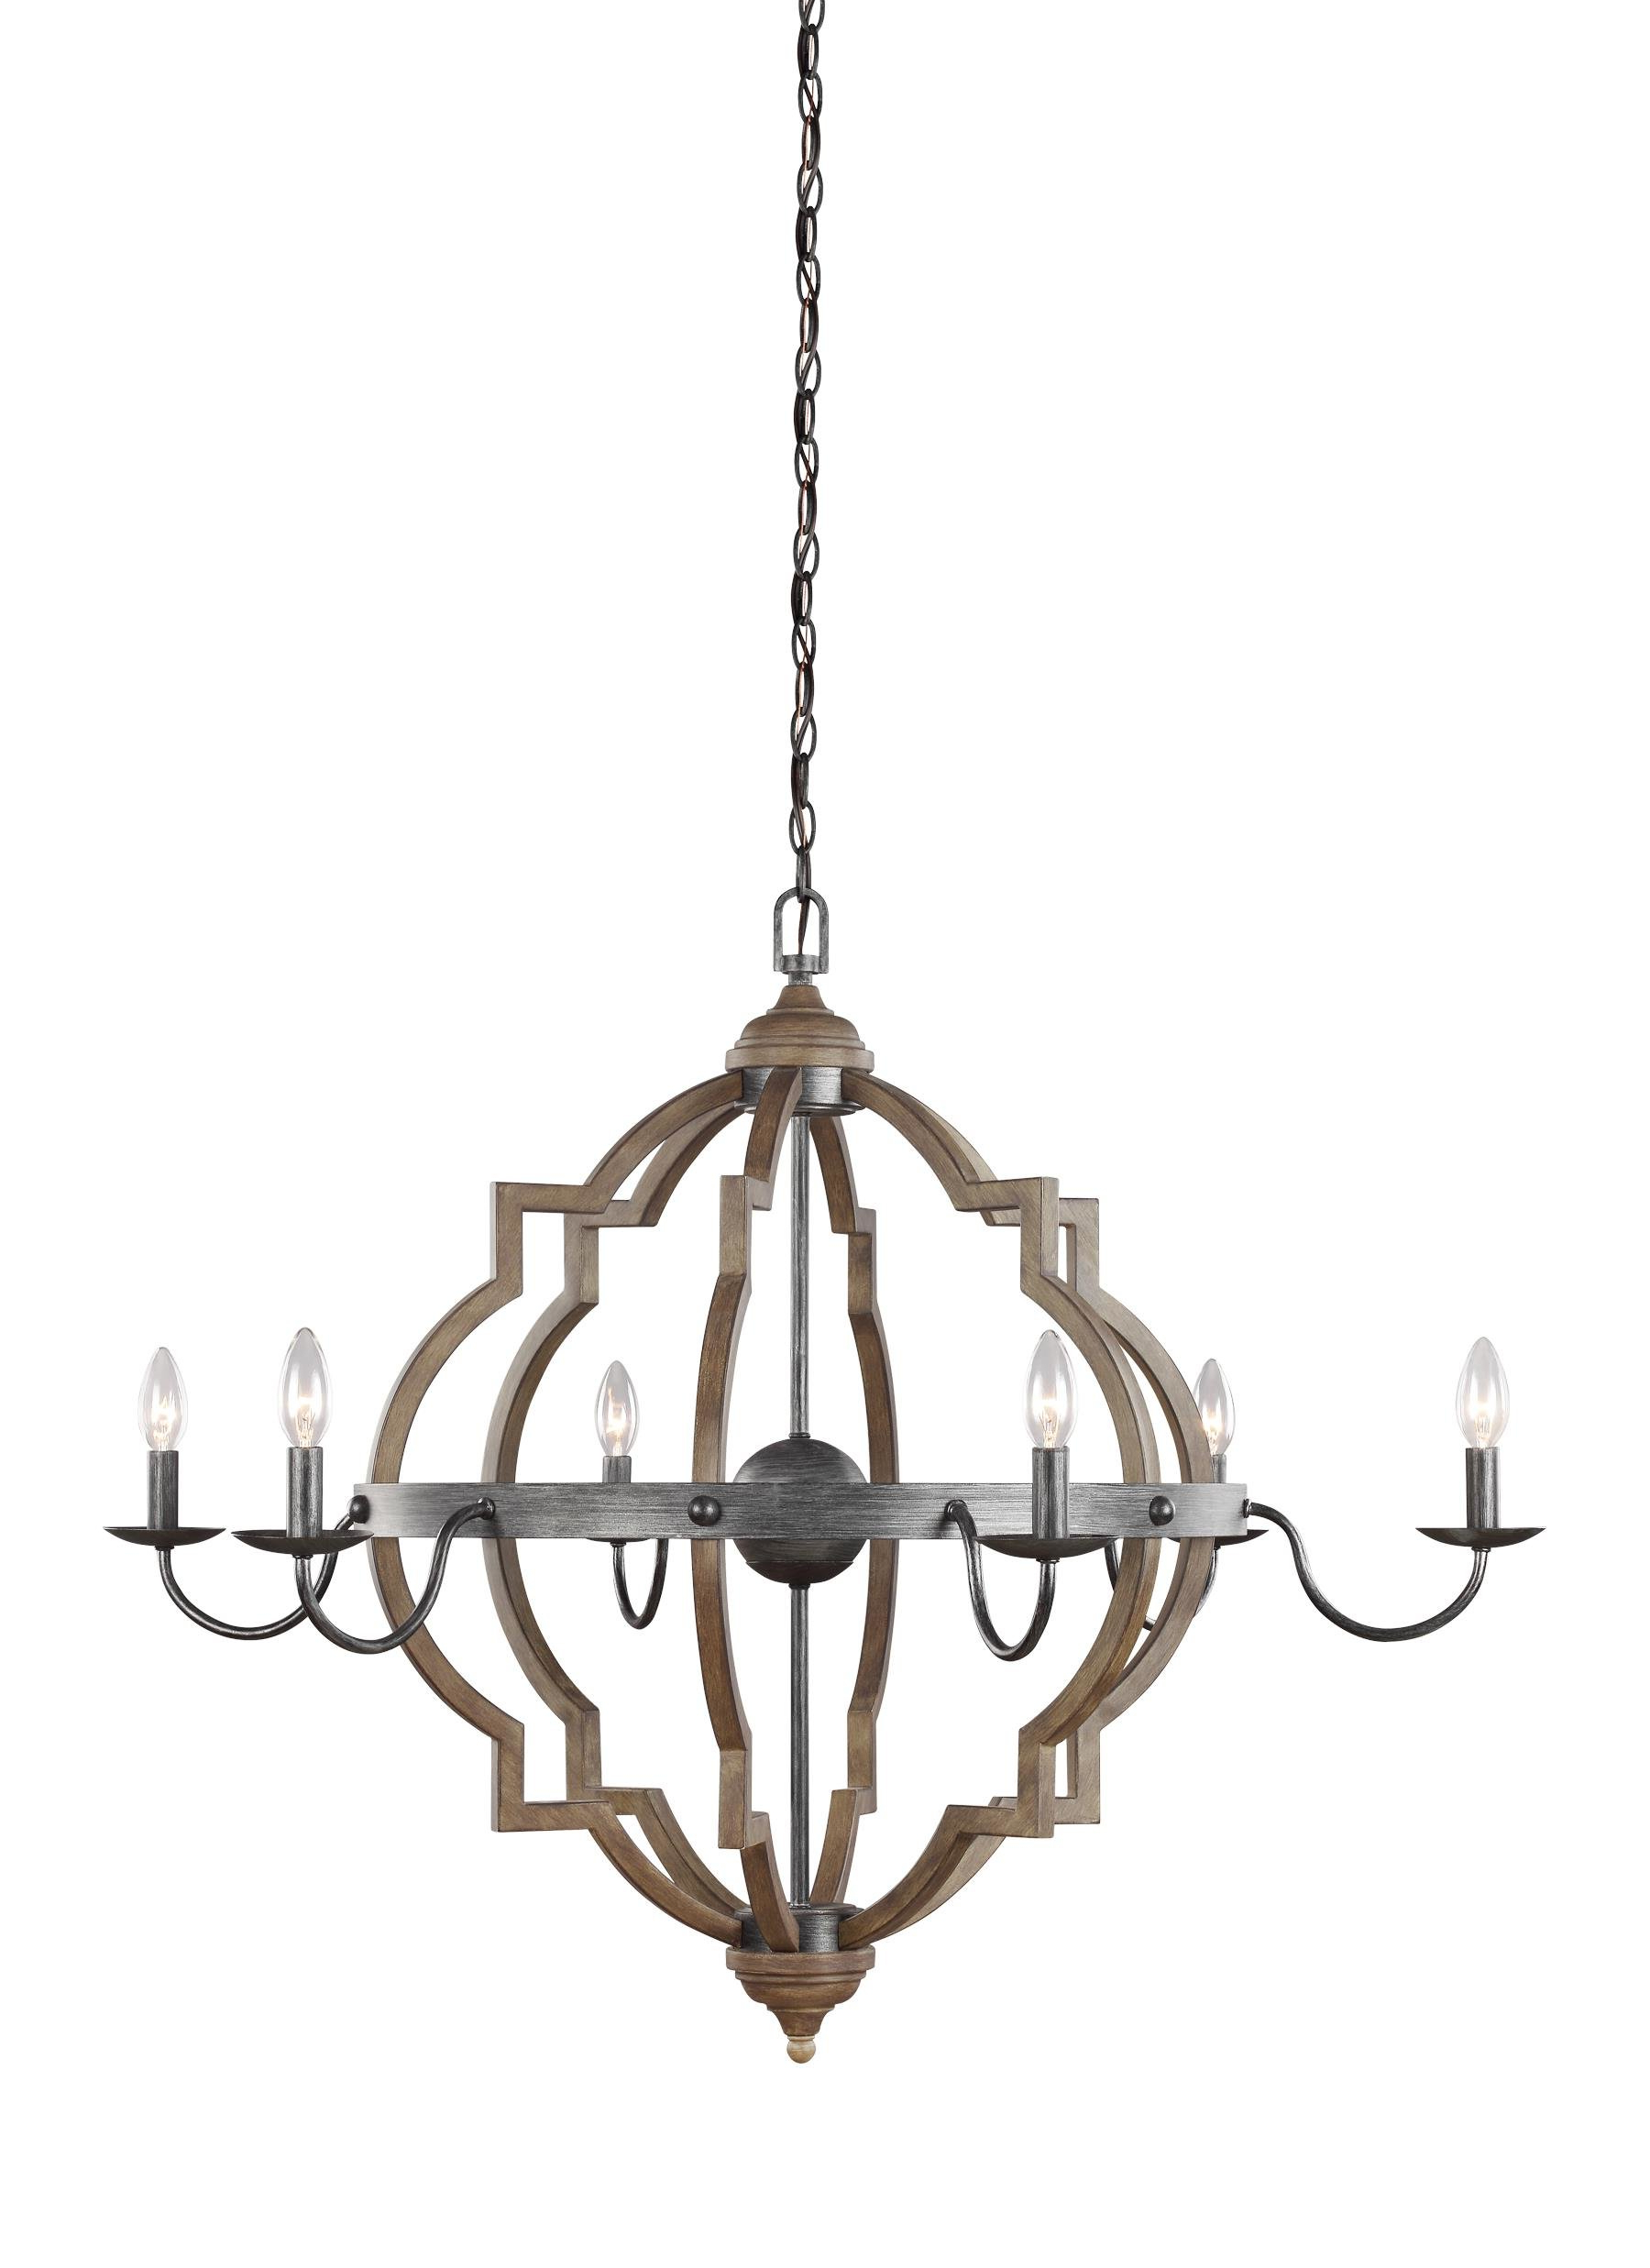 Donna 6 Light Globe Chandeliers For Well Known Donna 6 Light Candle Style Chandelier & Reviews (View 10 of 20)